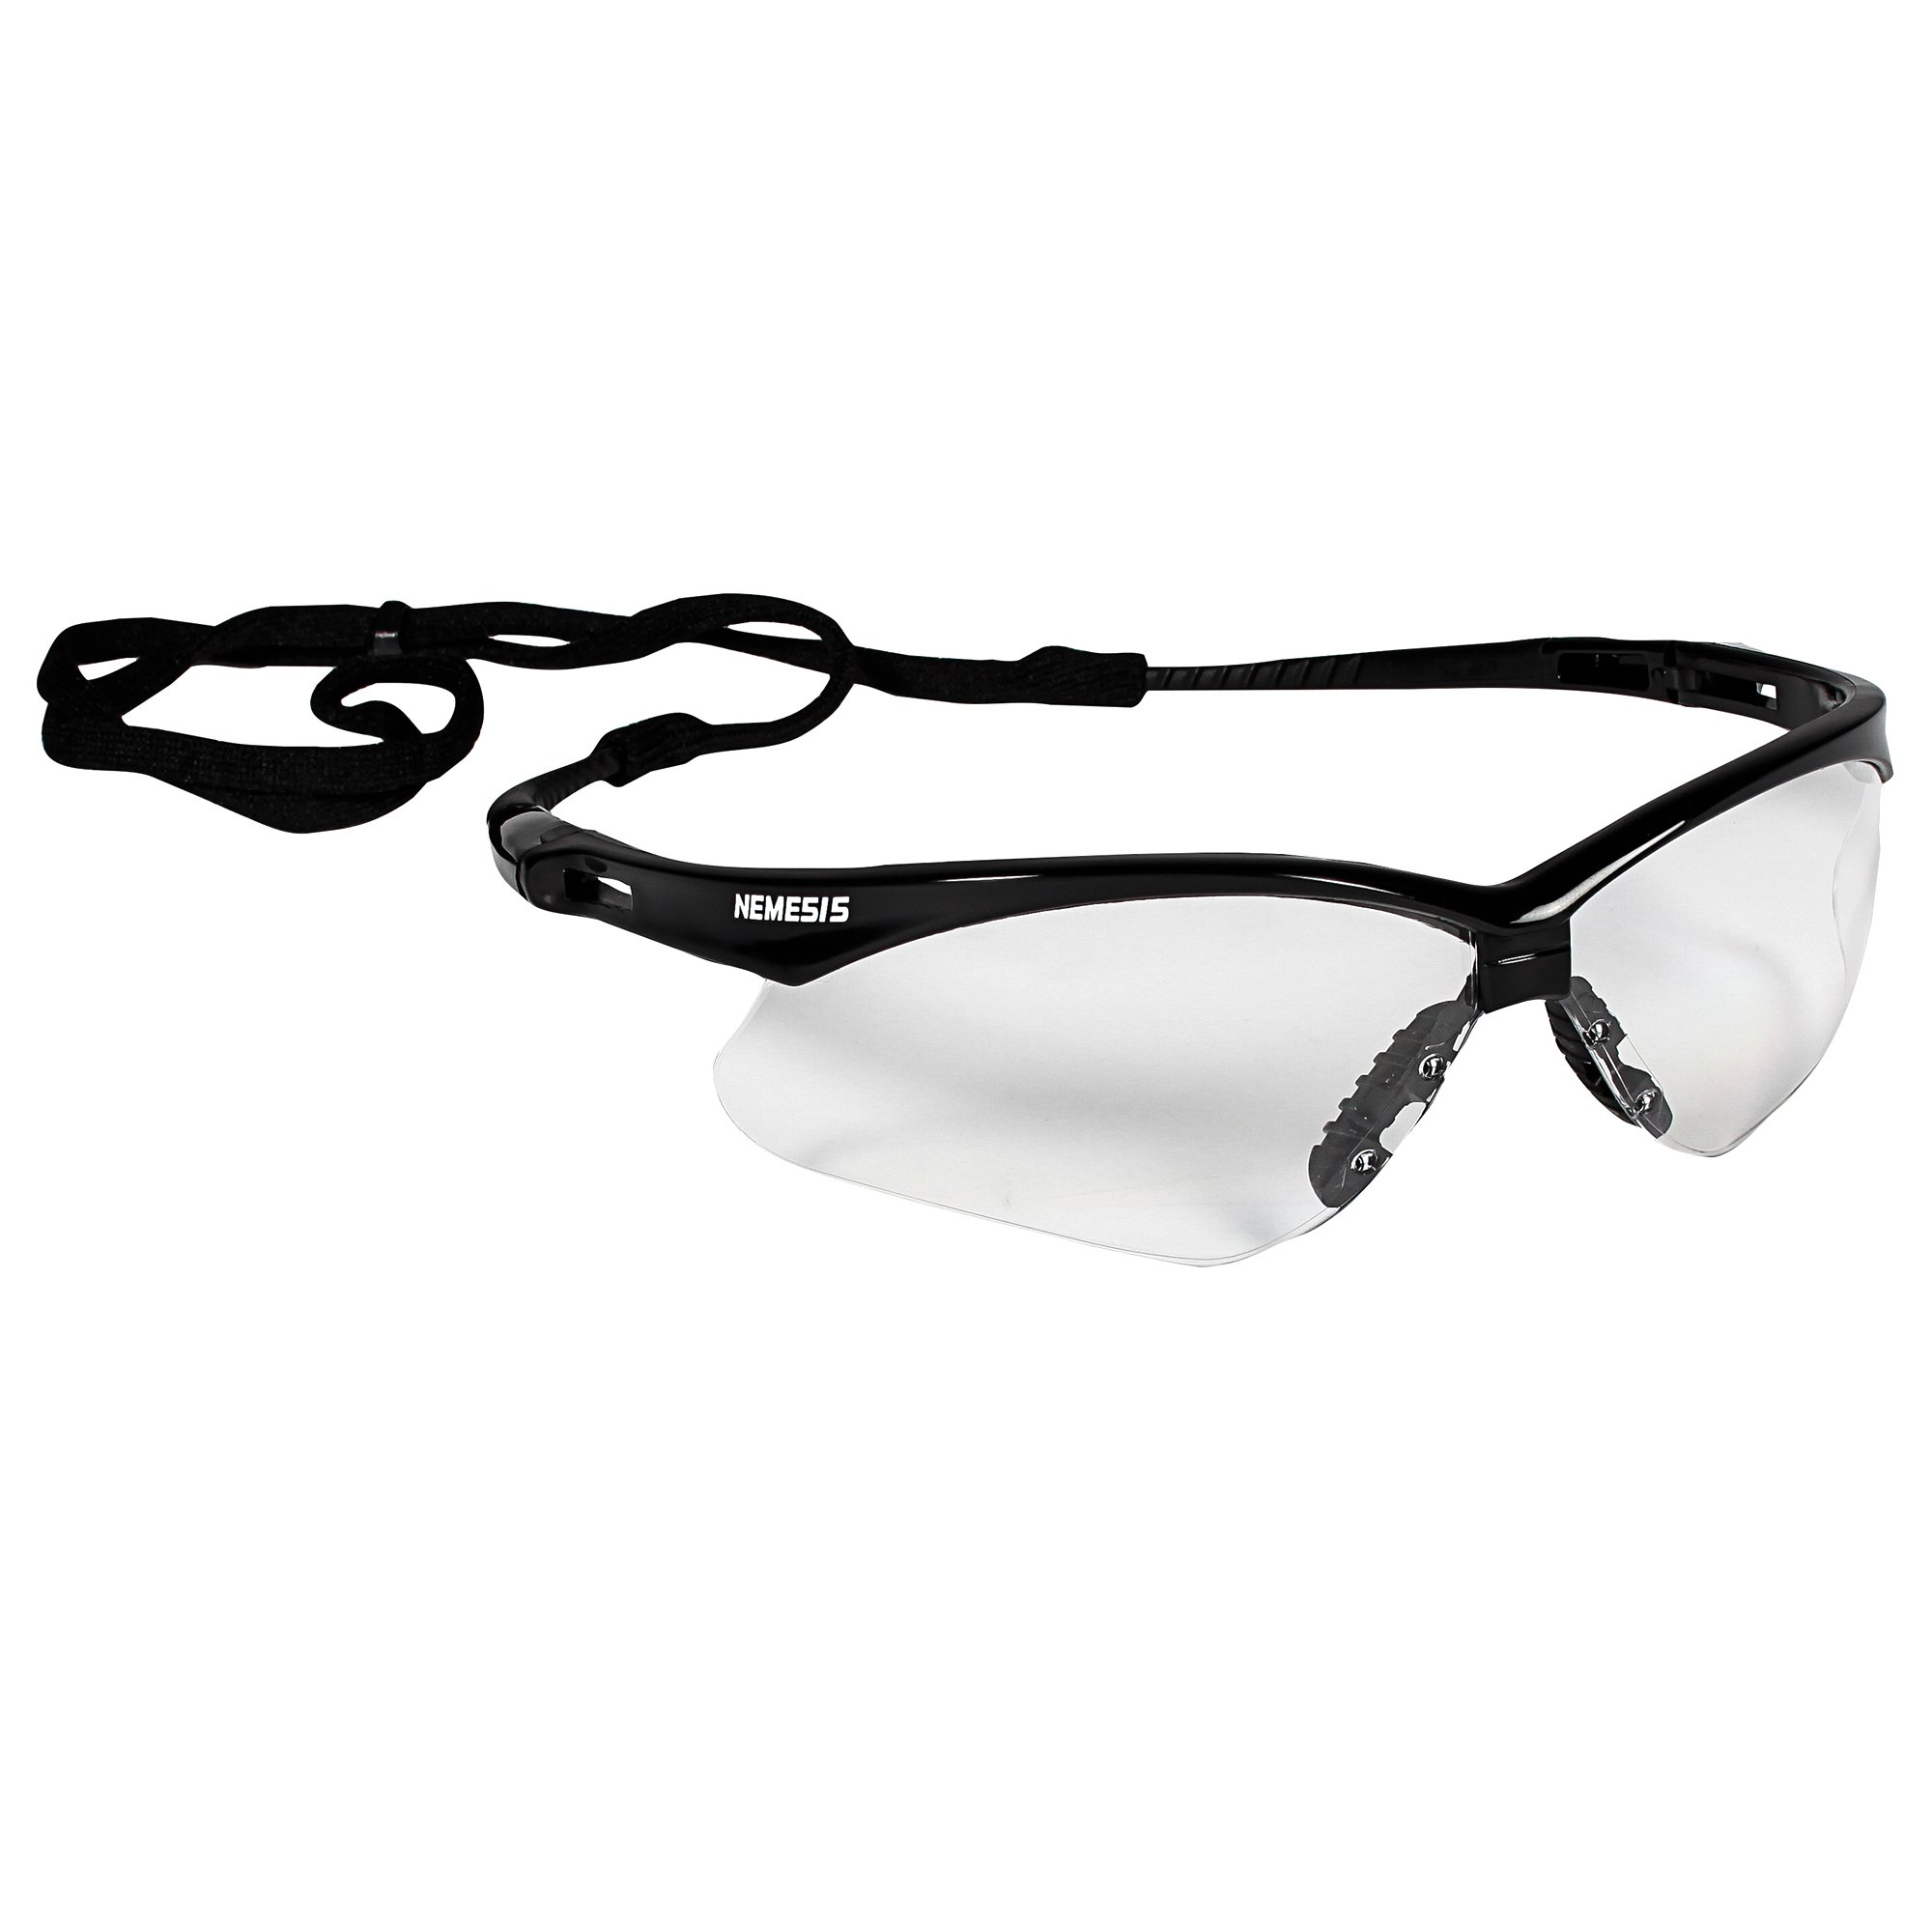 Jackson Safety Nemesis Safety Glasses 25679, Clear Anti-Fog Lens with Black Frame, 12 Pairs/Case by Jackson Safety